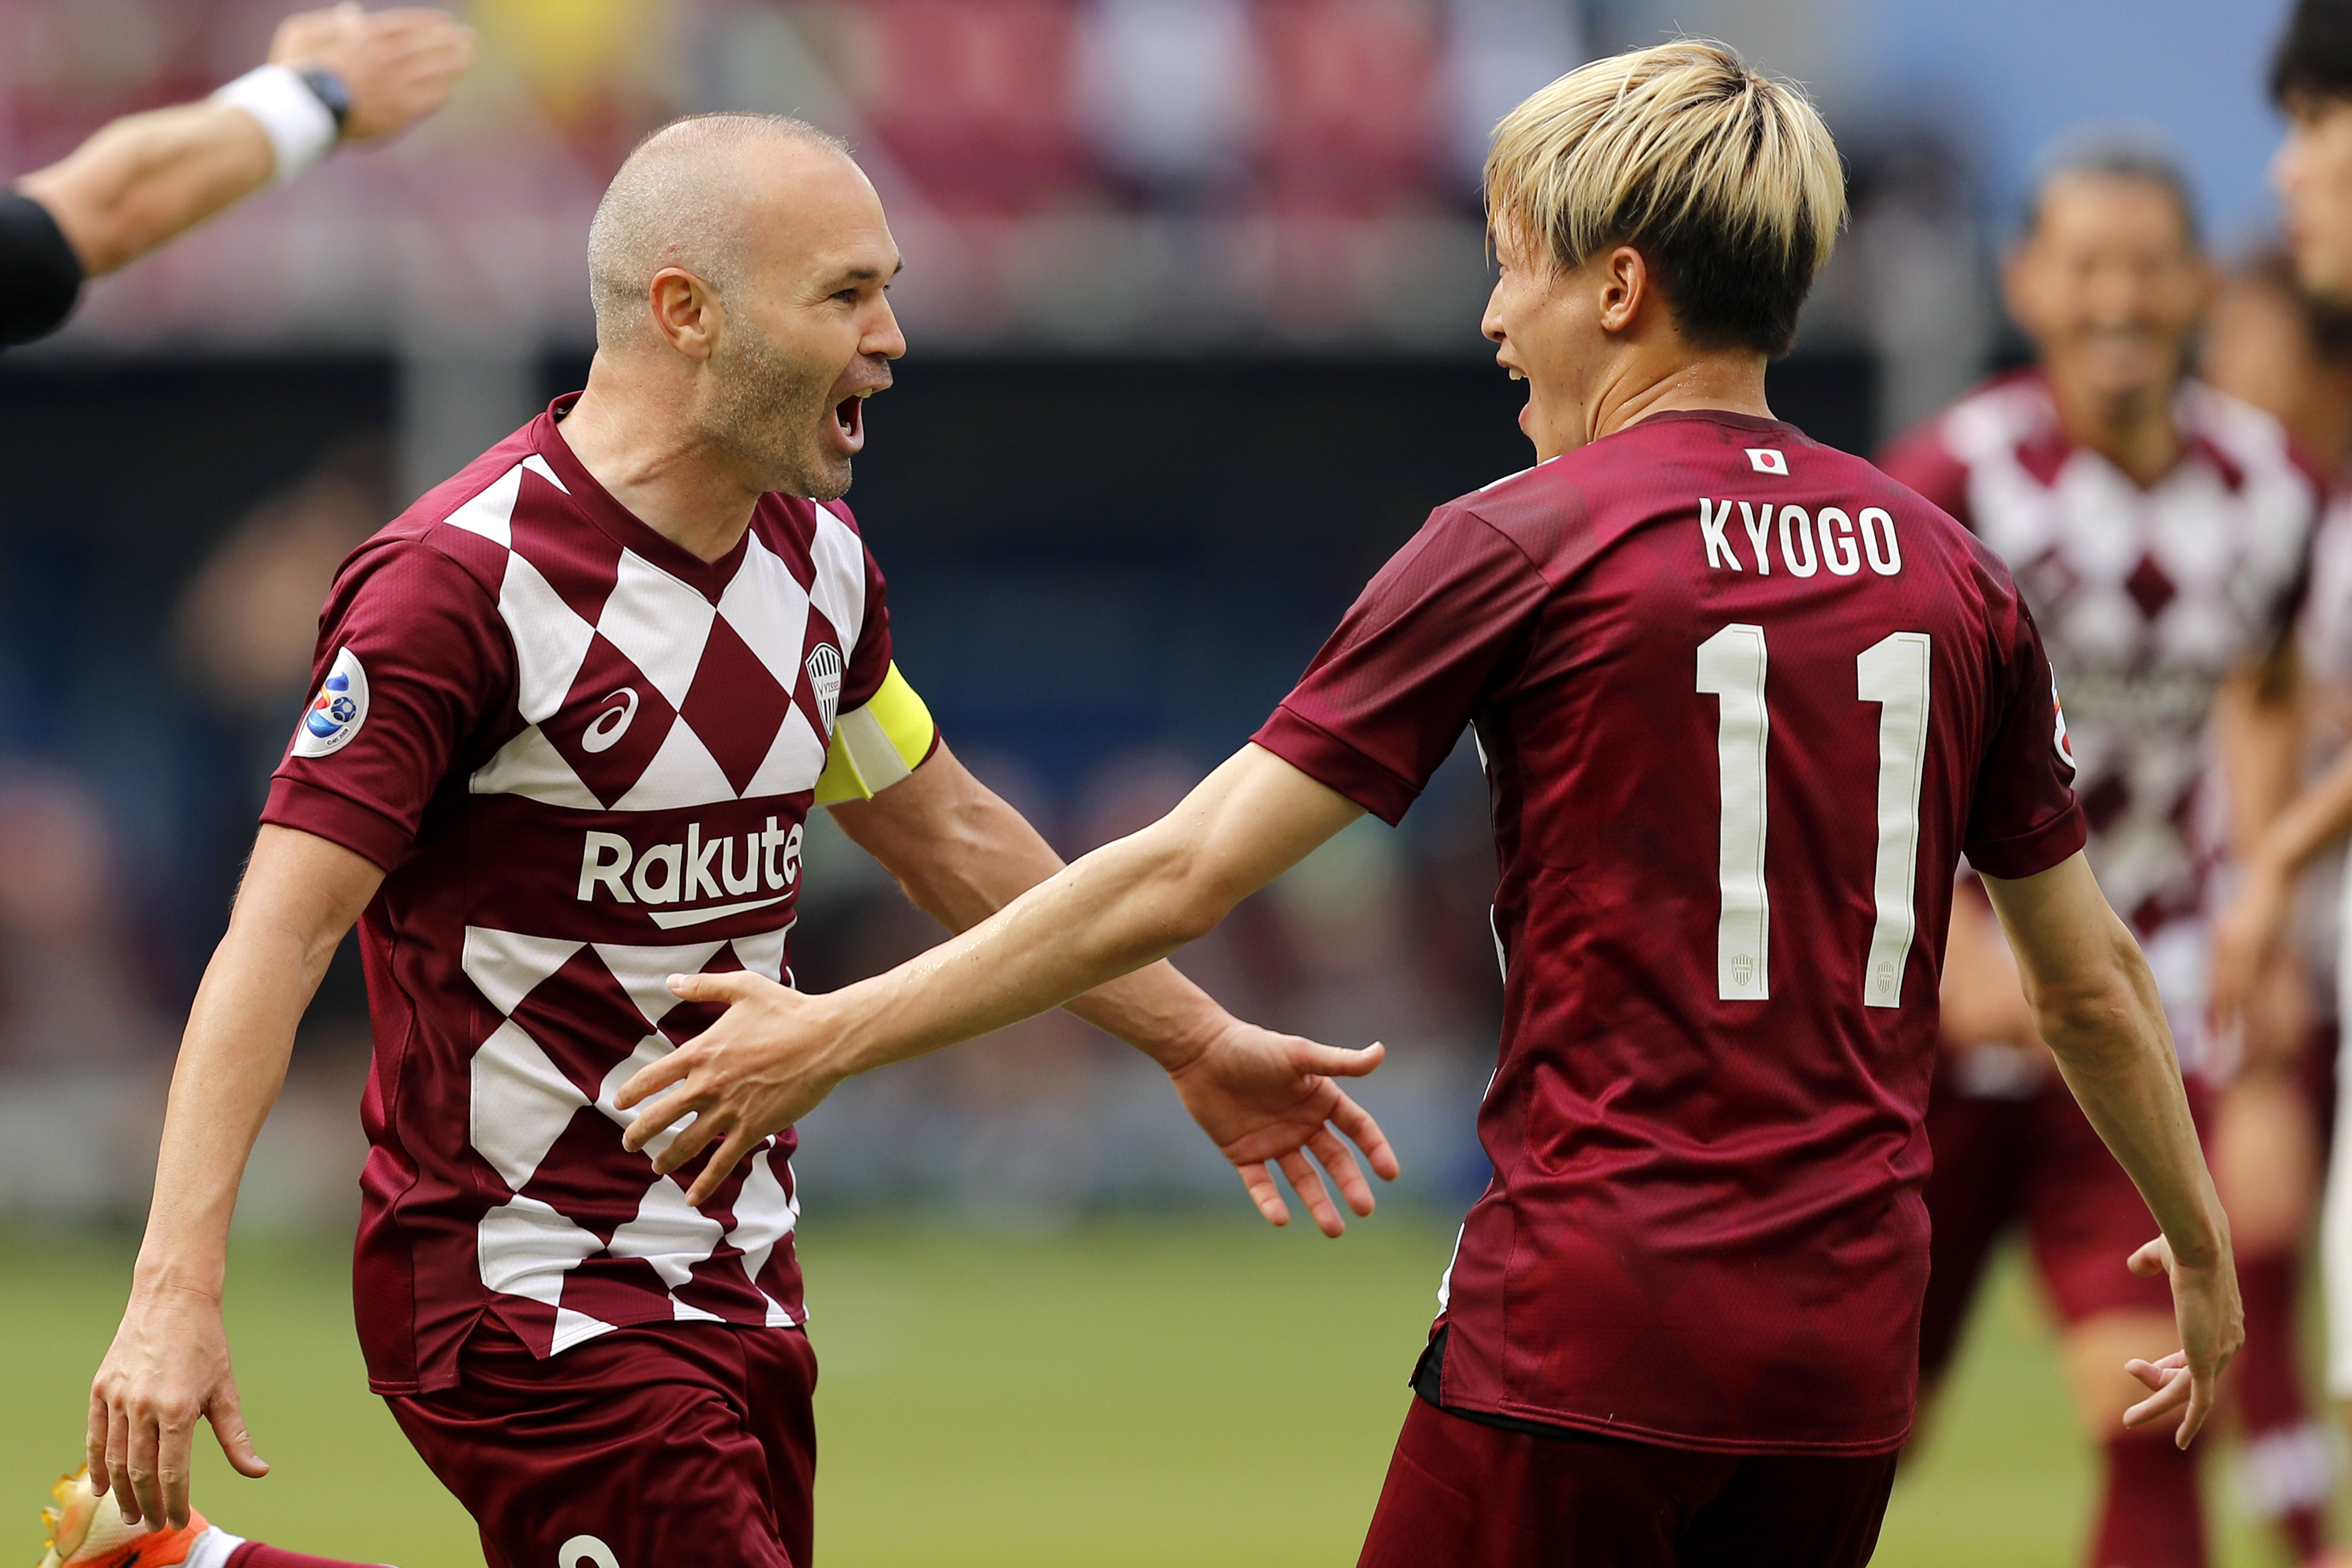 AFC Champions League: Andres Iniesta makes a mark in Doha as Vissel Kobe reach the quarter-finals